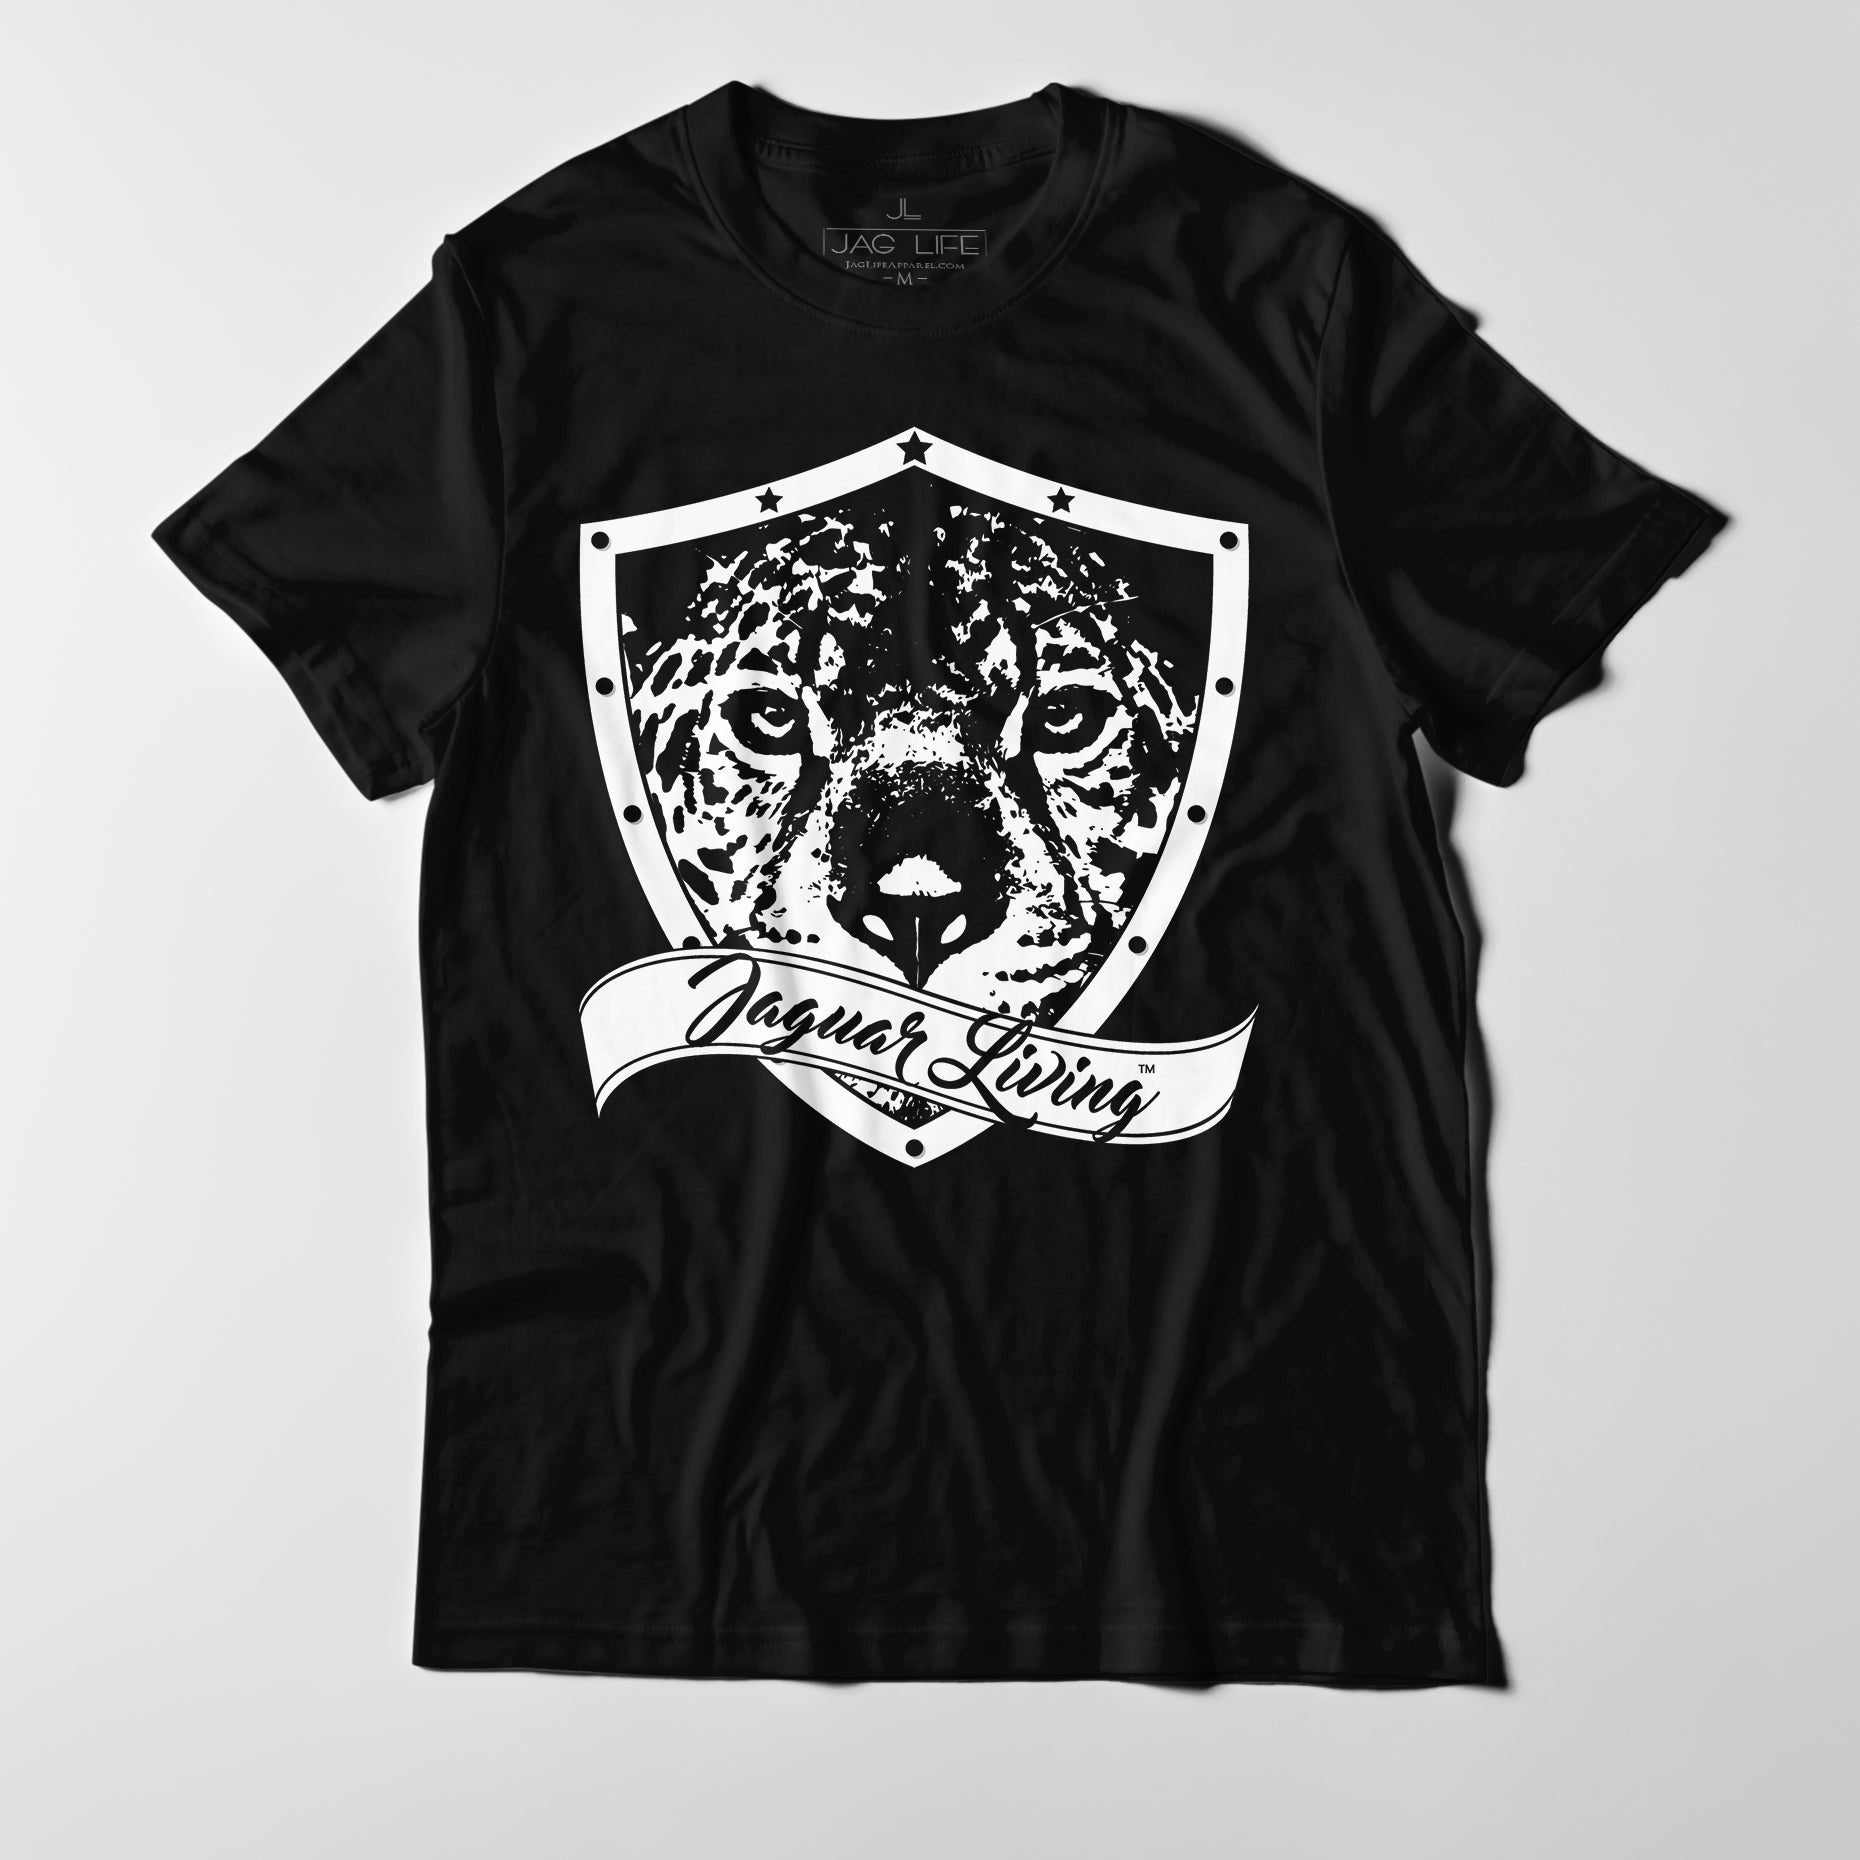 s print from clothing short type t prints shirt funny product summer sleeve classic jaguar car cotton breakdown famous humour shirts